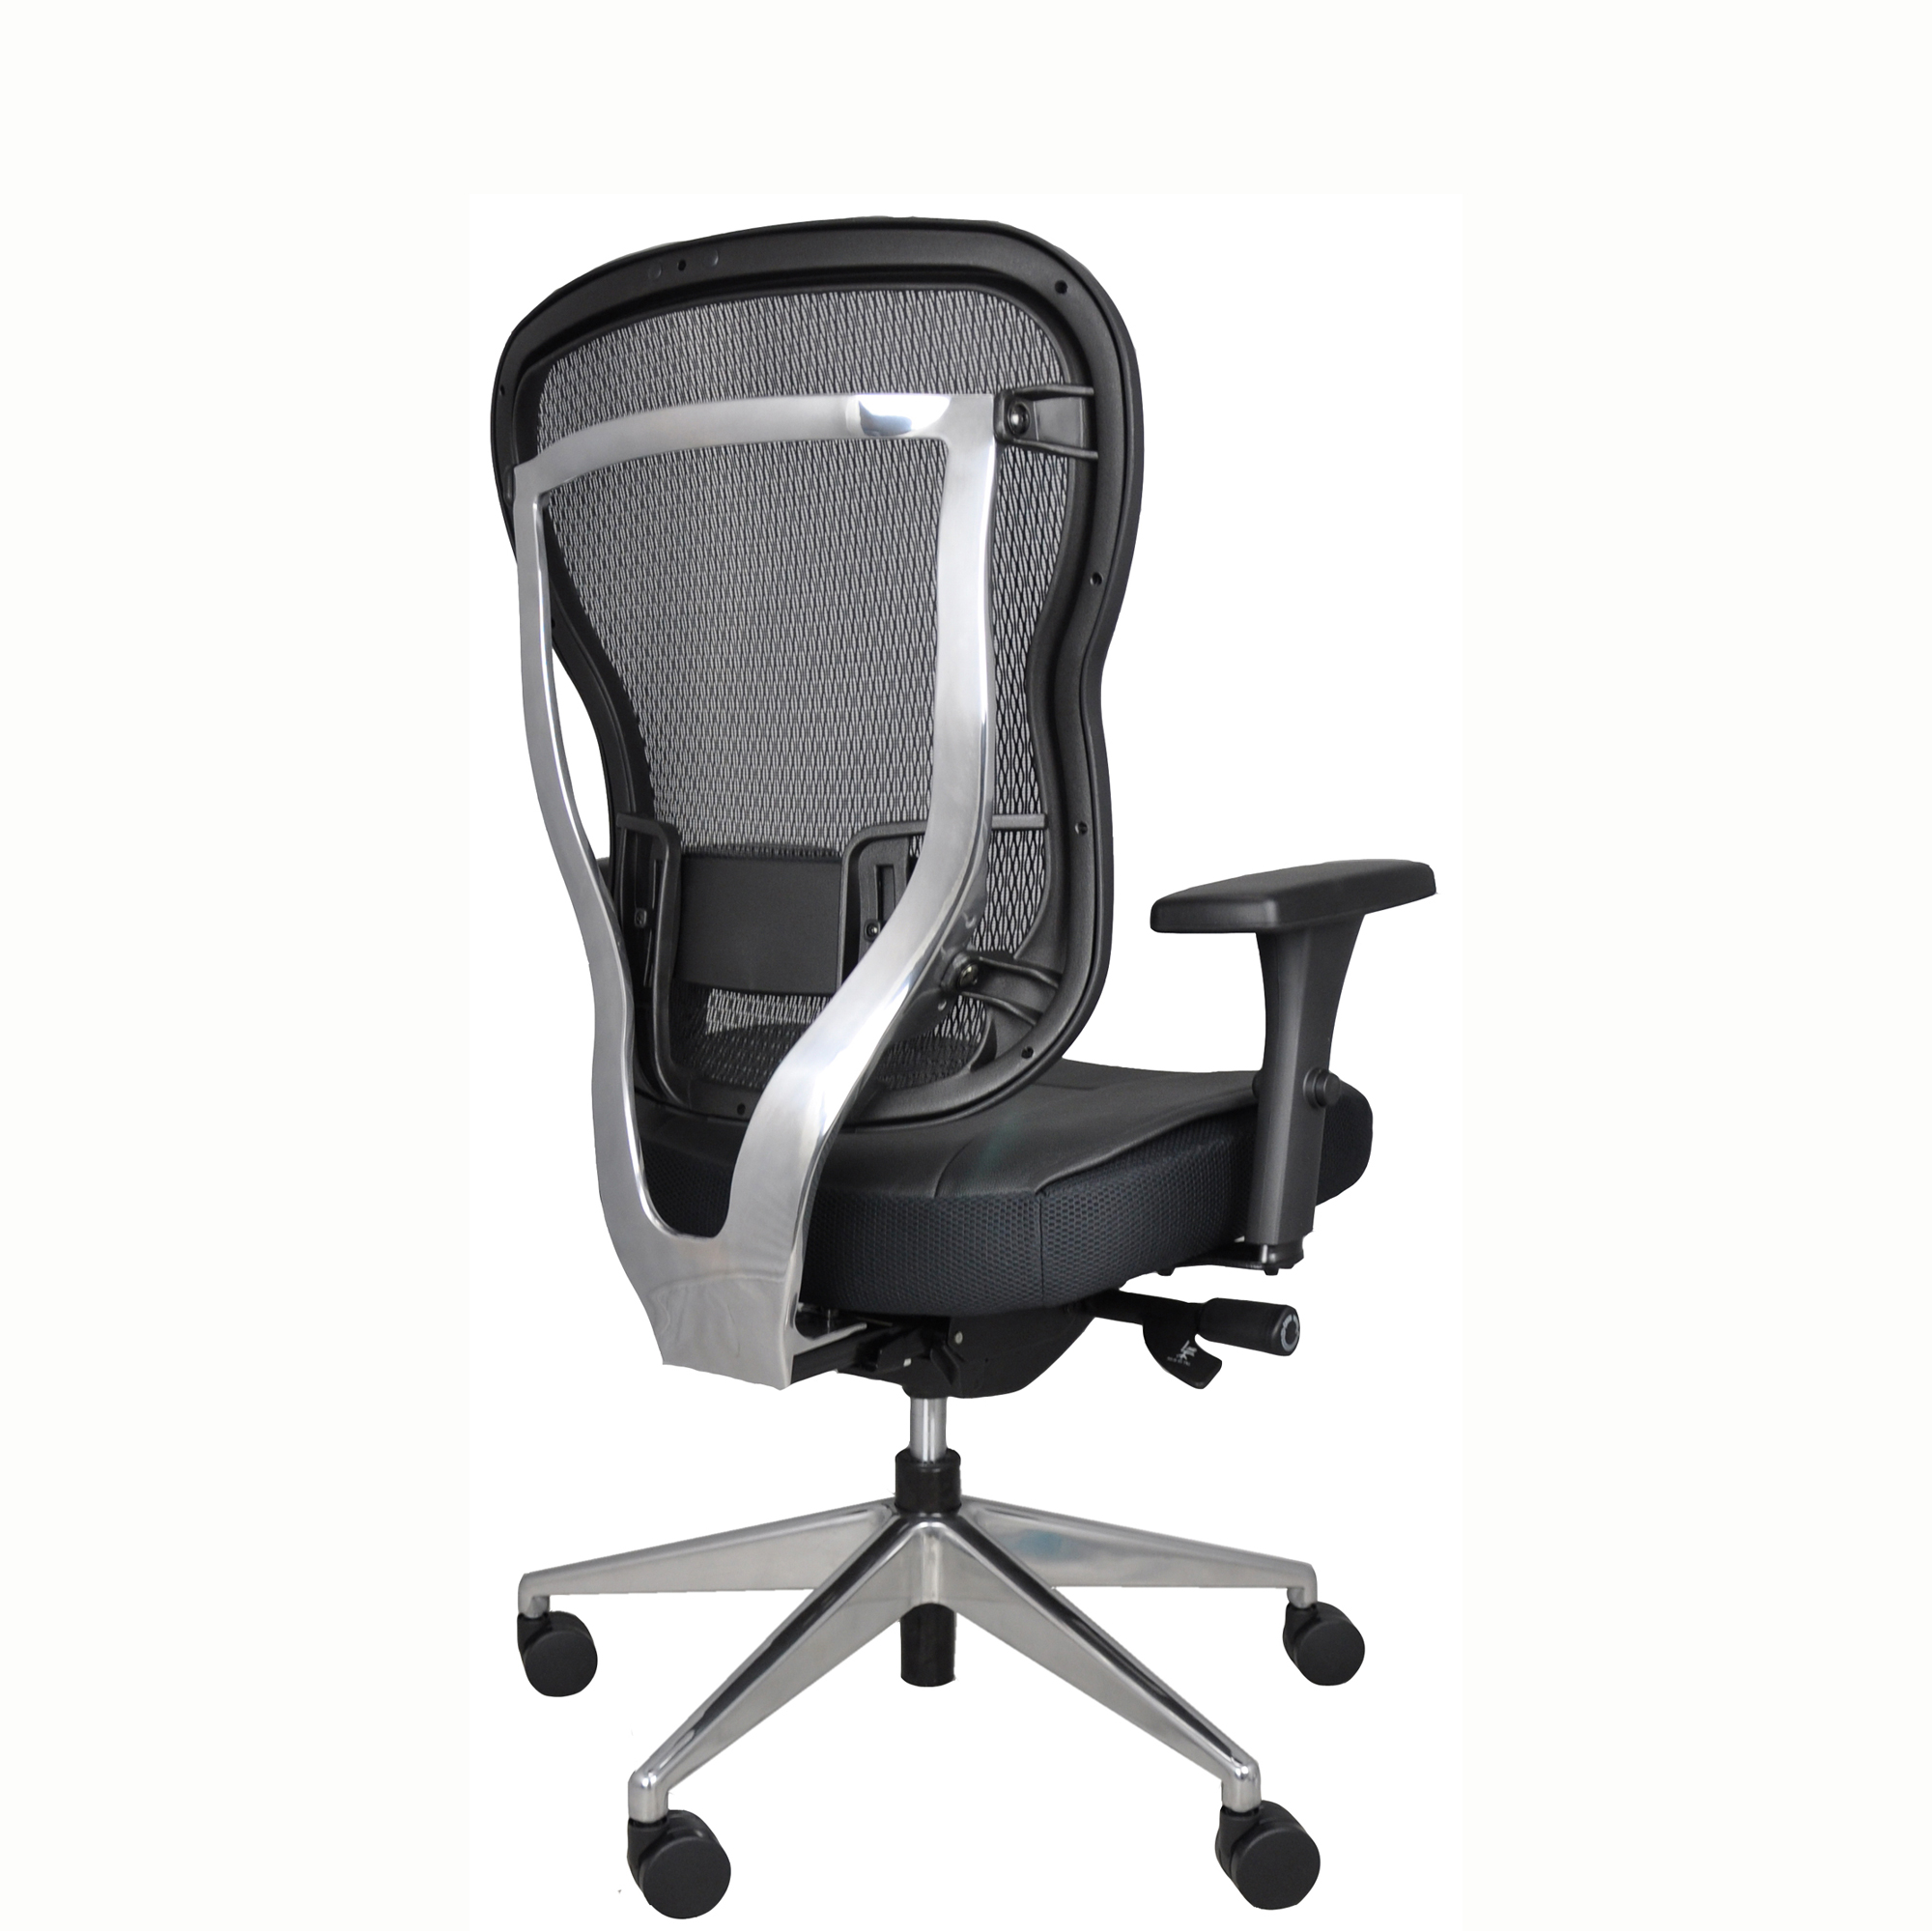 Home Office Chair - Back Angle